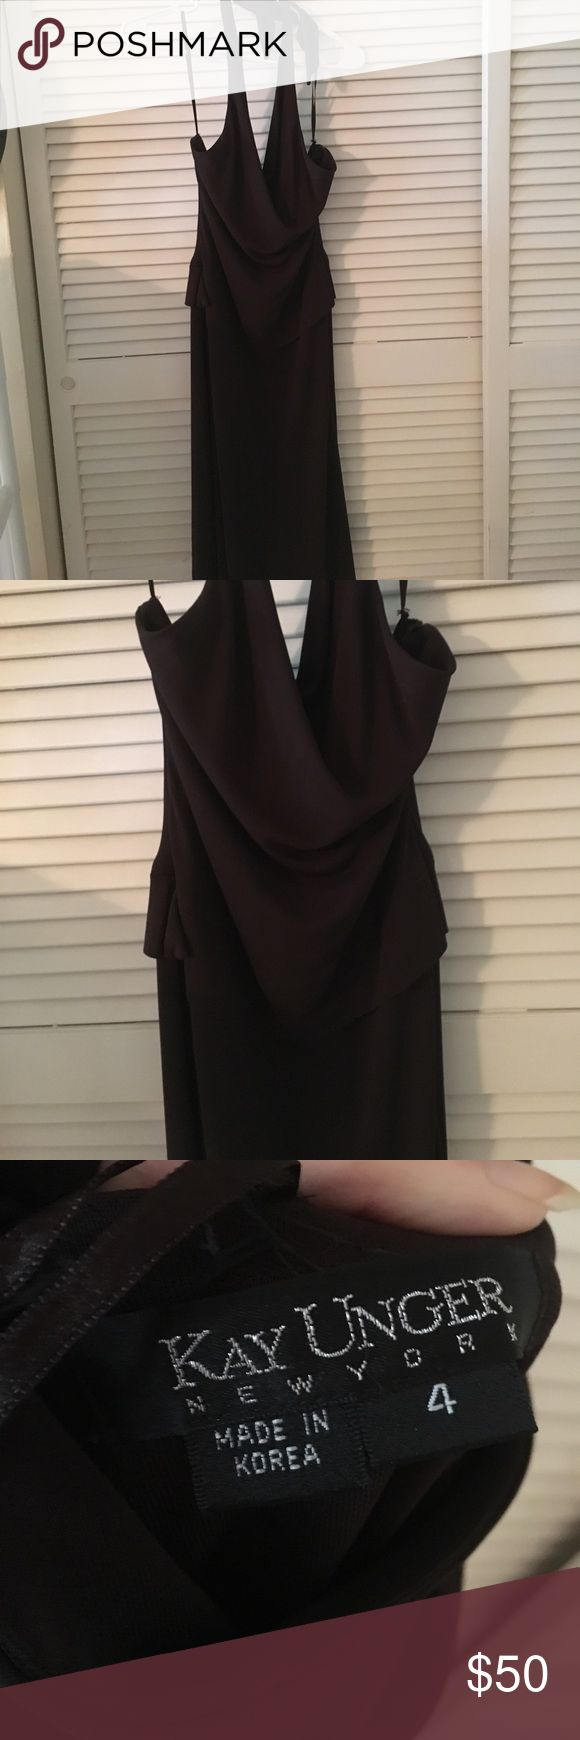 Brown silky dress Perfect going out dress! I'm 5'6 and it stops at my calves, it's a silky dress but slightly heavy and form fitting, only worn once years ago, zipper is on the side and unnoticeable (no trades) MAKE AN OFFER  Bundle to save :) No defects Calvin Klein Dresses Backless